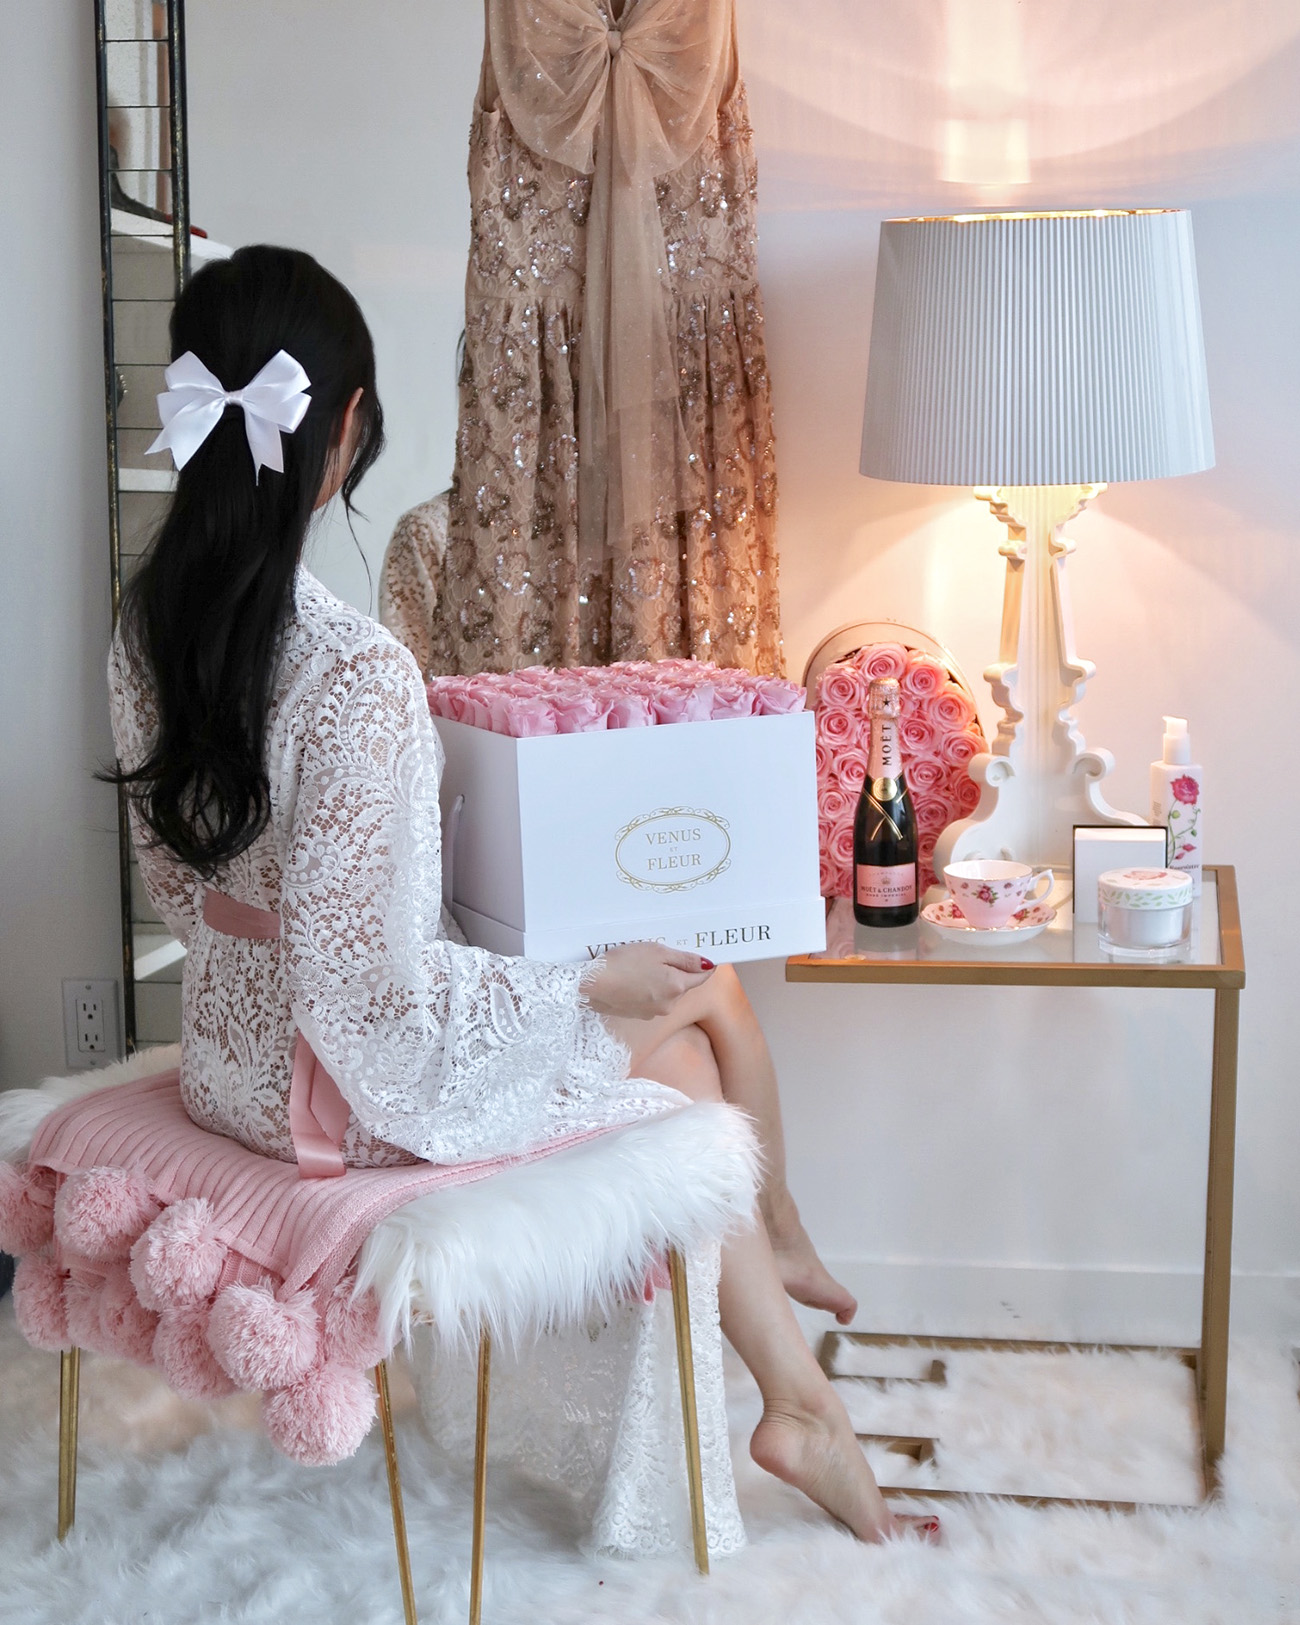 9 Days of Valentine – Day 7: Lounging in Lace and My Lingerie Picks | Of Leather and Lace - Fashion and Travel Blog by Tina Lee | White lace robe, pink roses, feminine decor, room decor, white decor, pink decor